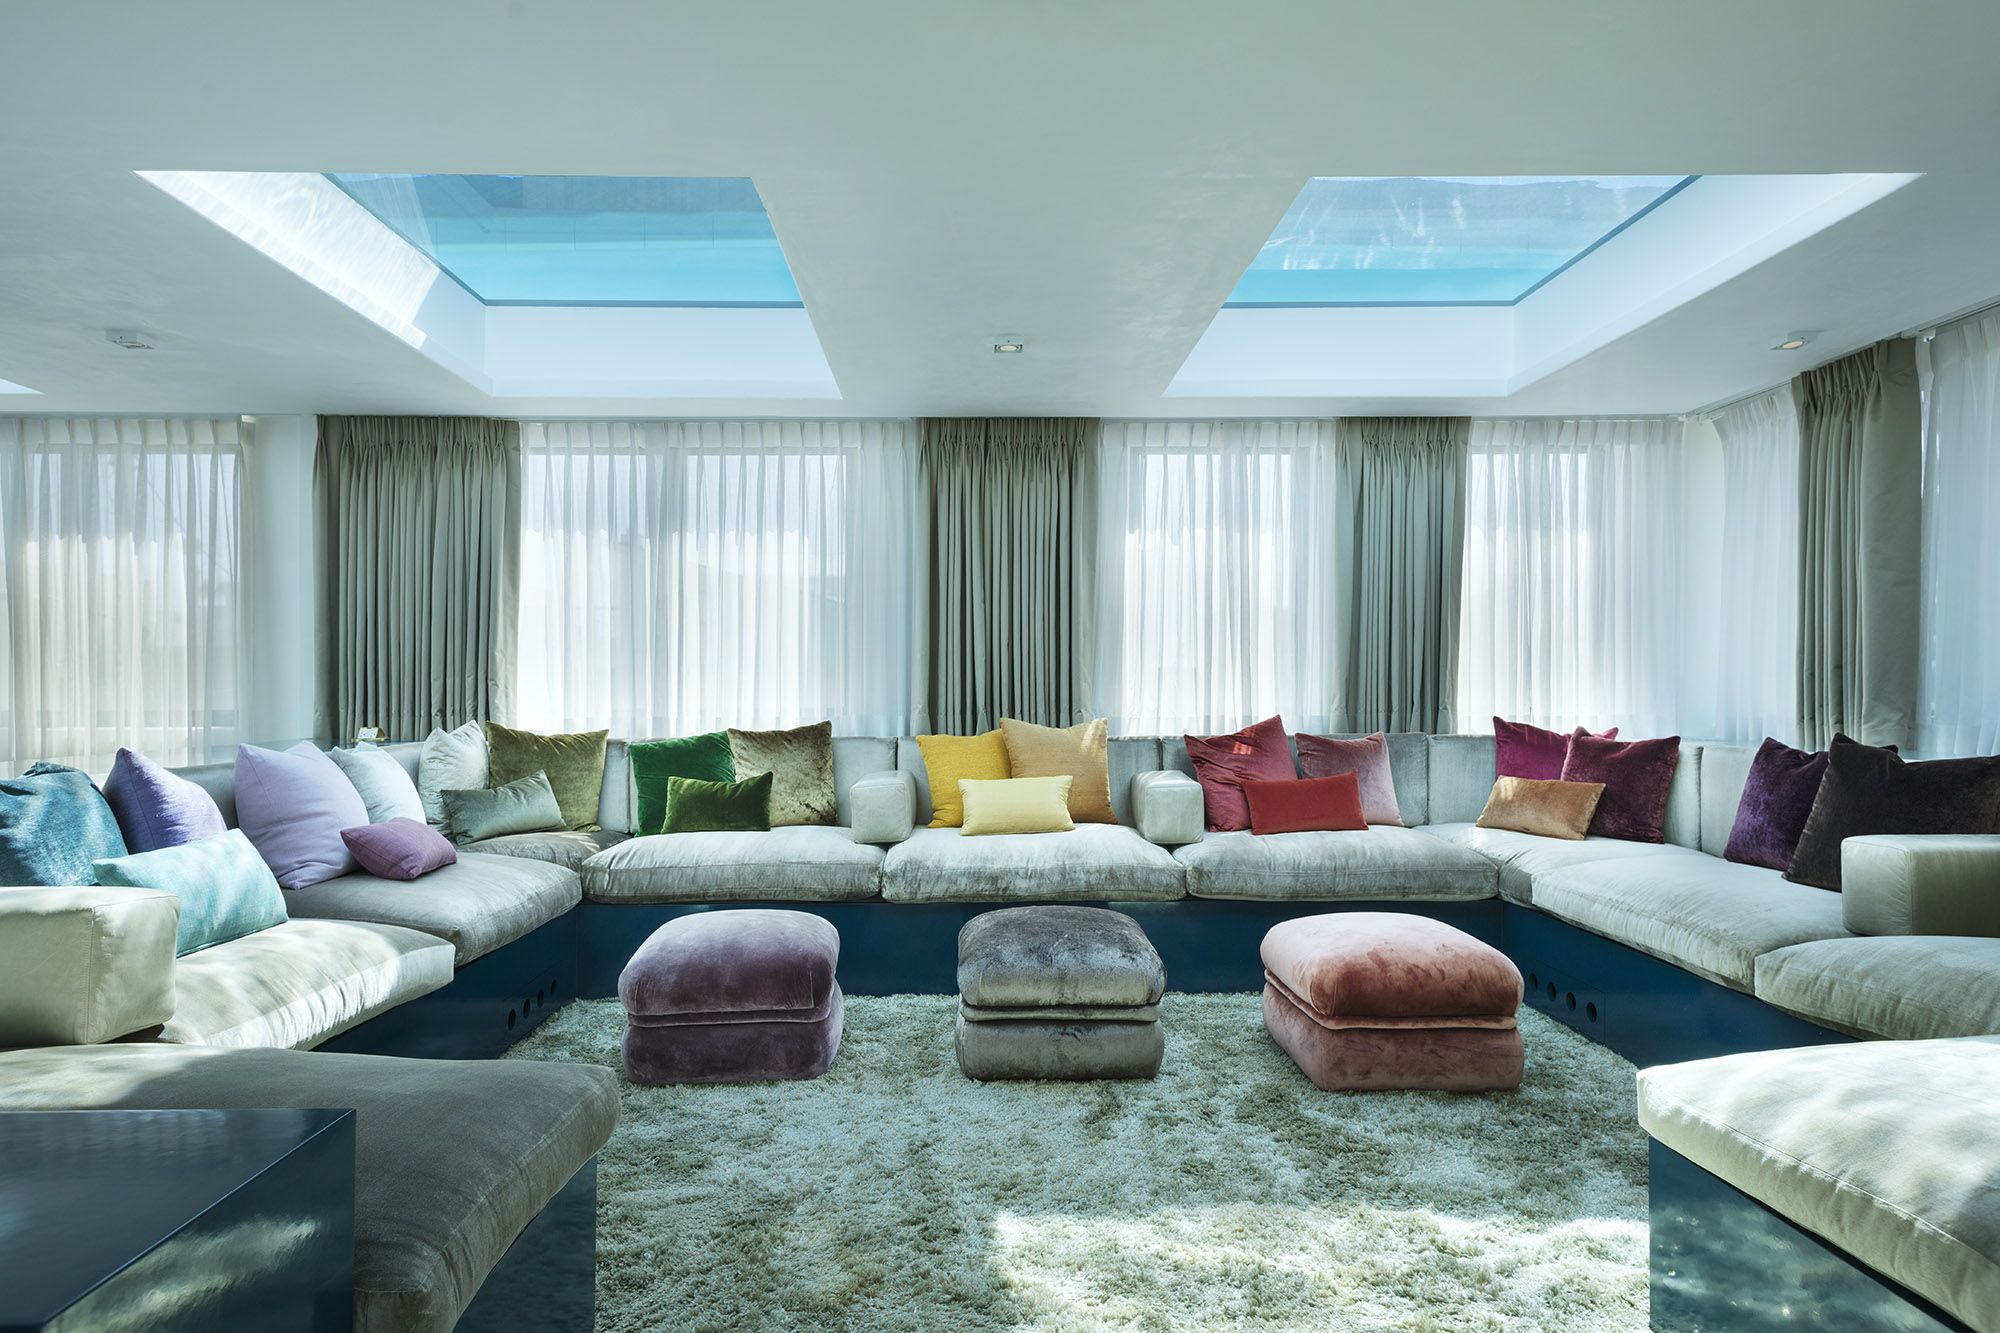 10 Living Room Rug Ideas - Stylish Area Rugs for Living Rooms